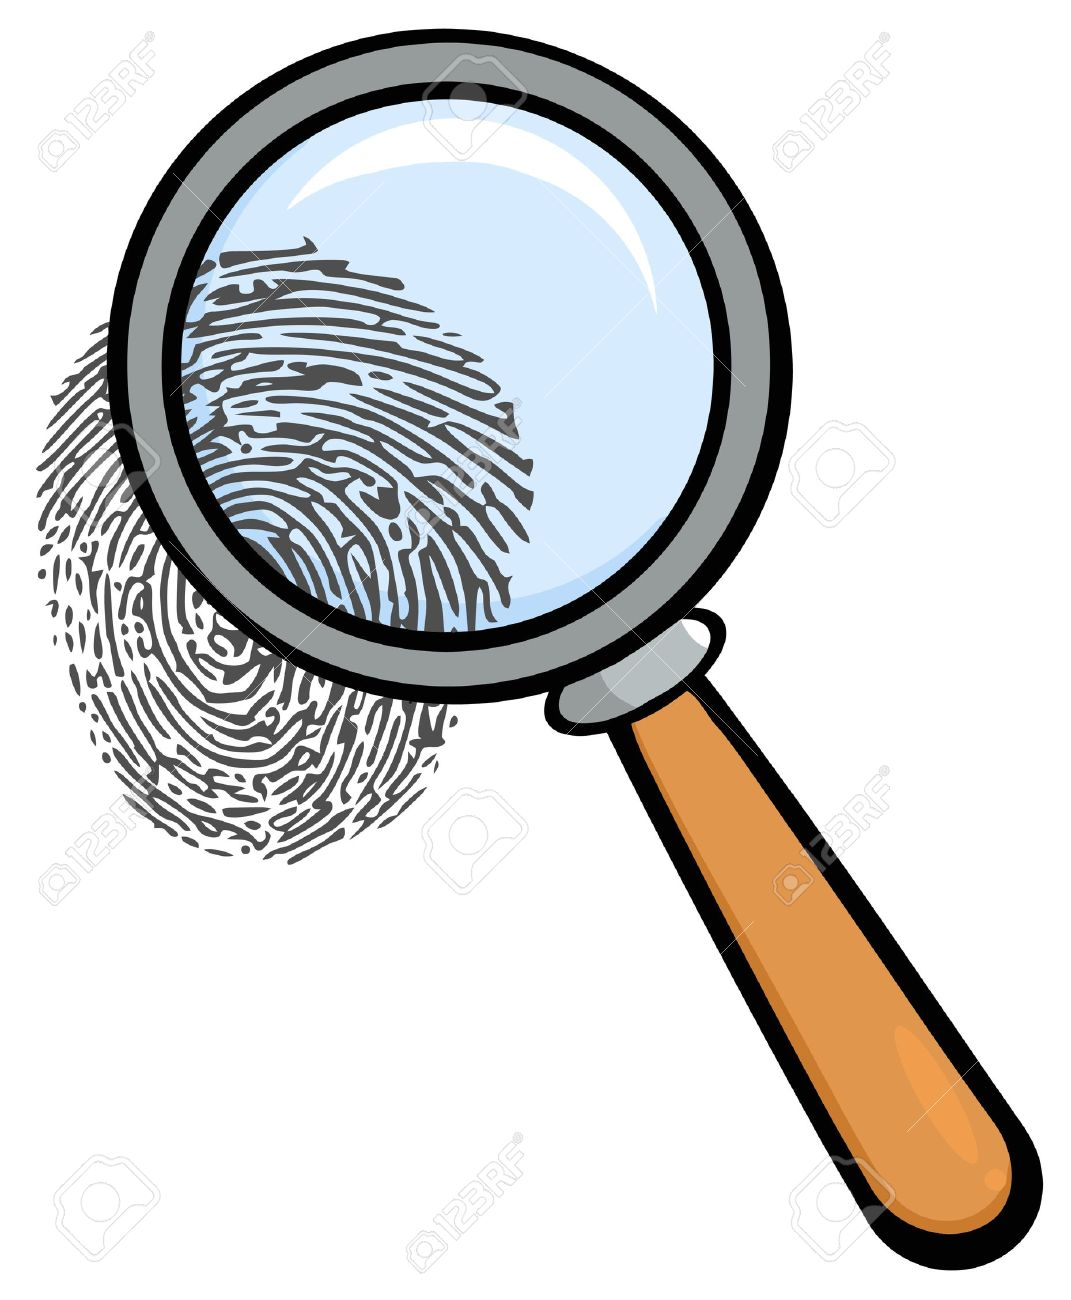 1841 Magnifying Glass free clipart.